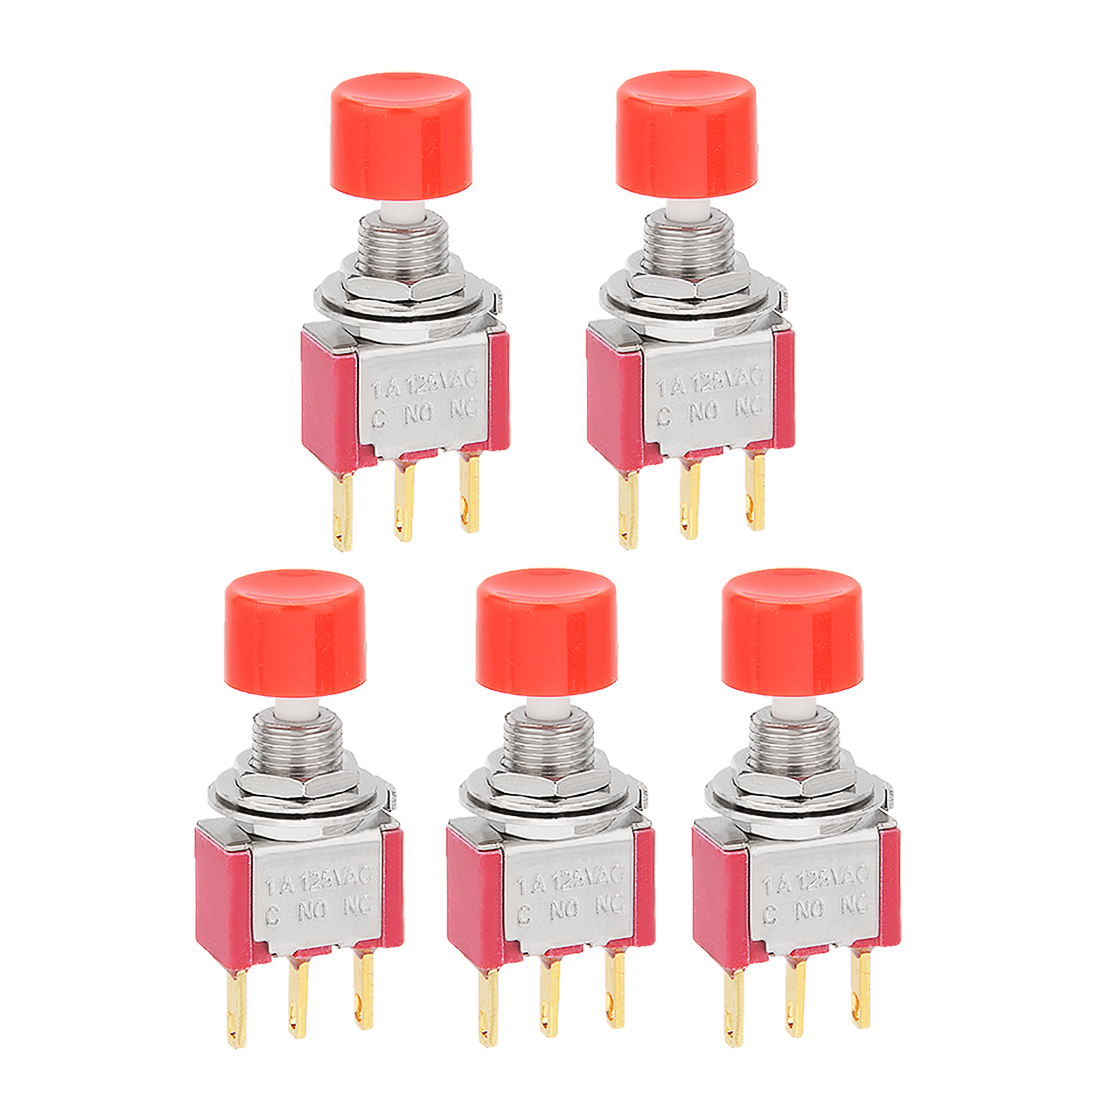 5pcs AC 125V 1A NO + NC Push Button Toggle Switch Momentary w Cap